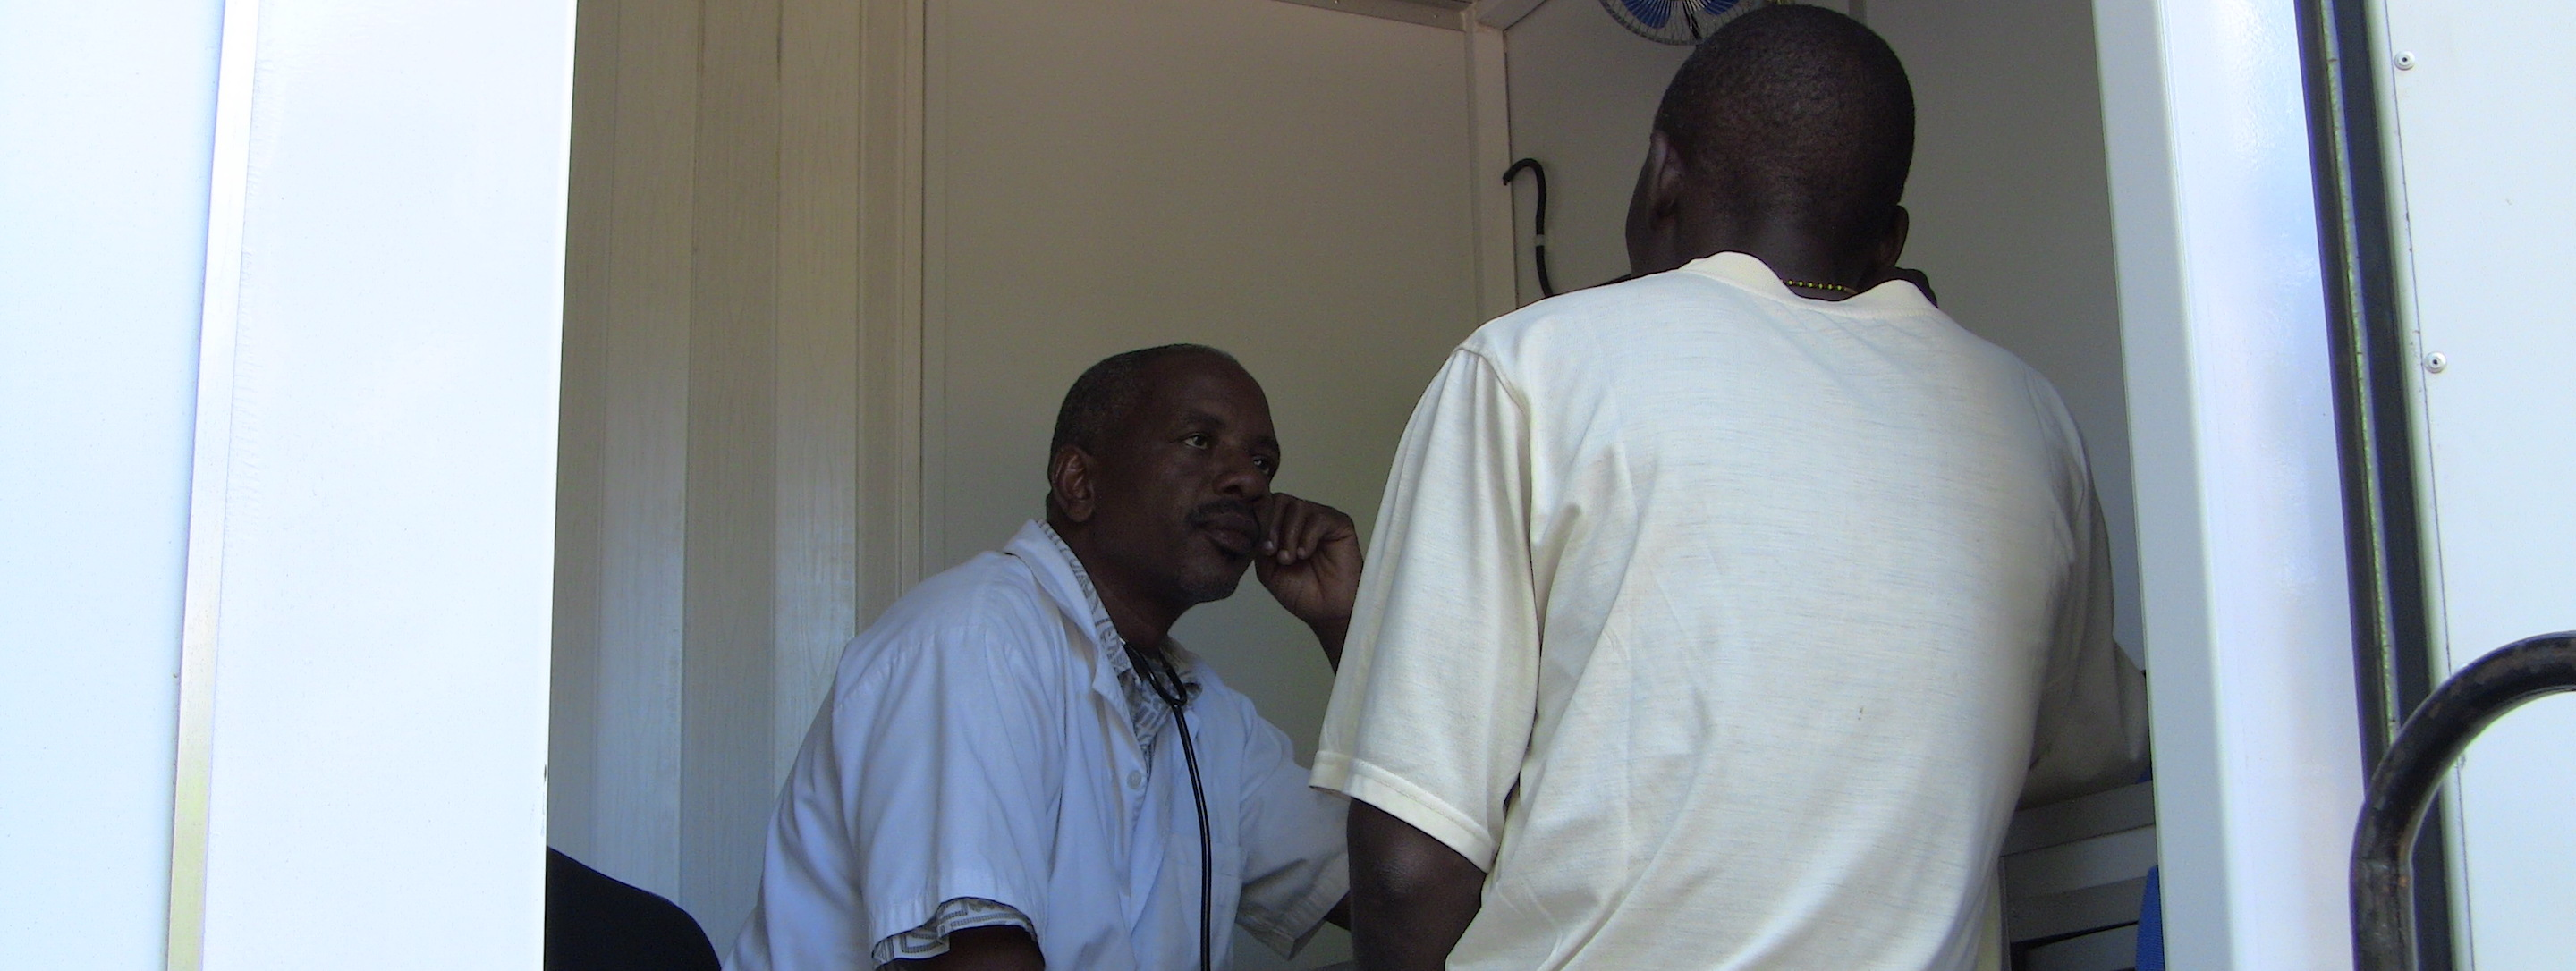 doctor and patient inside a mobile clinic